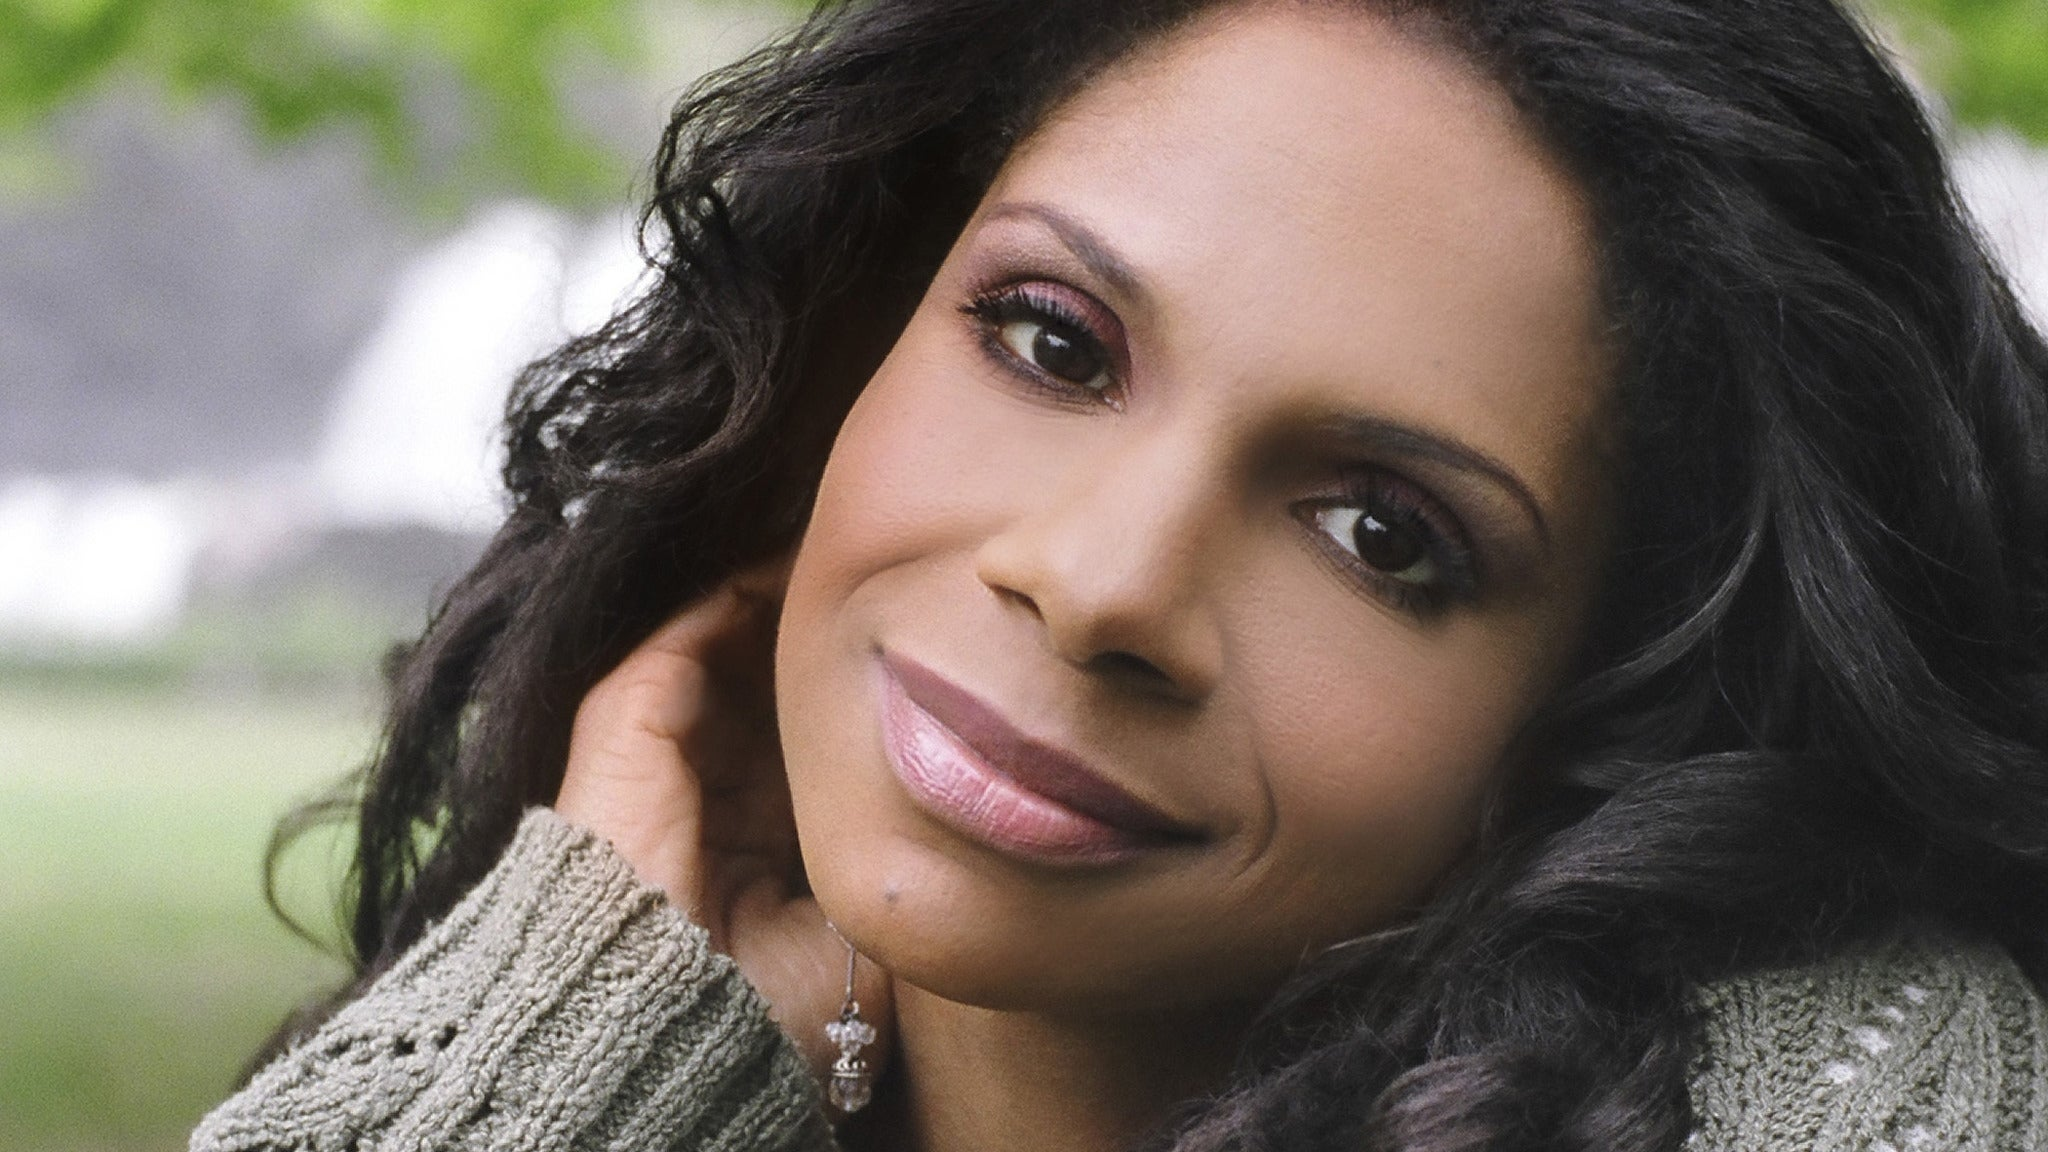 Audra McDonald at Community Theatre-NJ - Morristown, NJ 07960